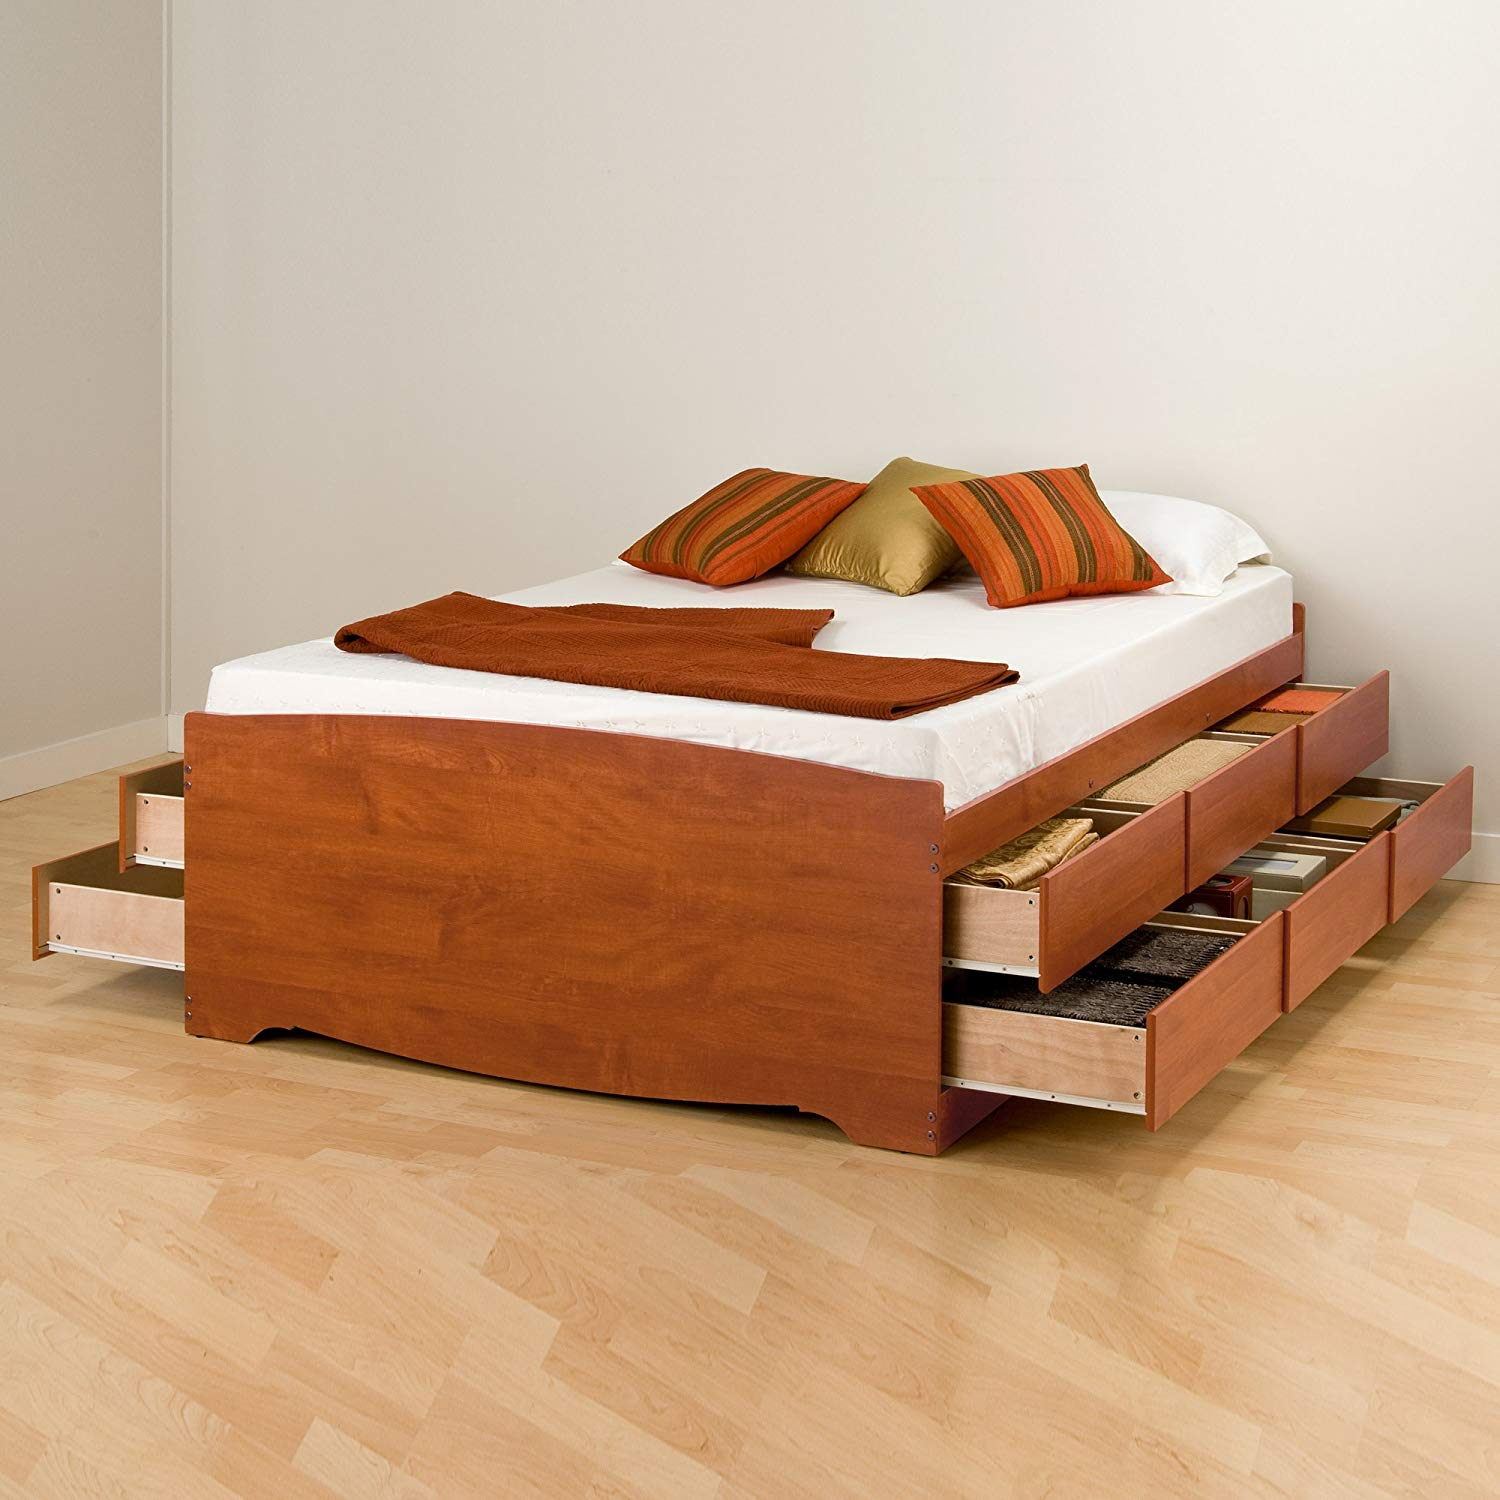 Image of: 12 Drawer Wood Bed